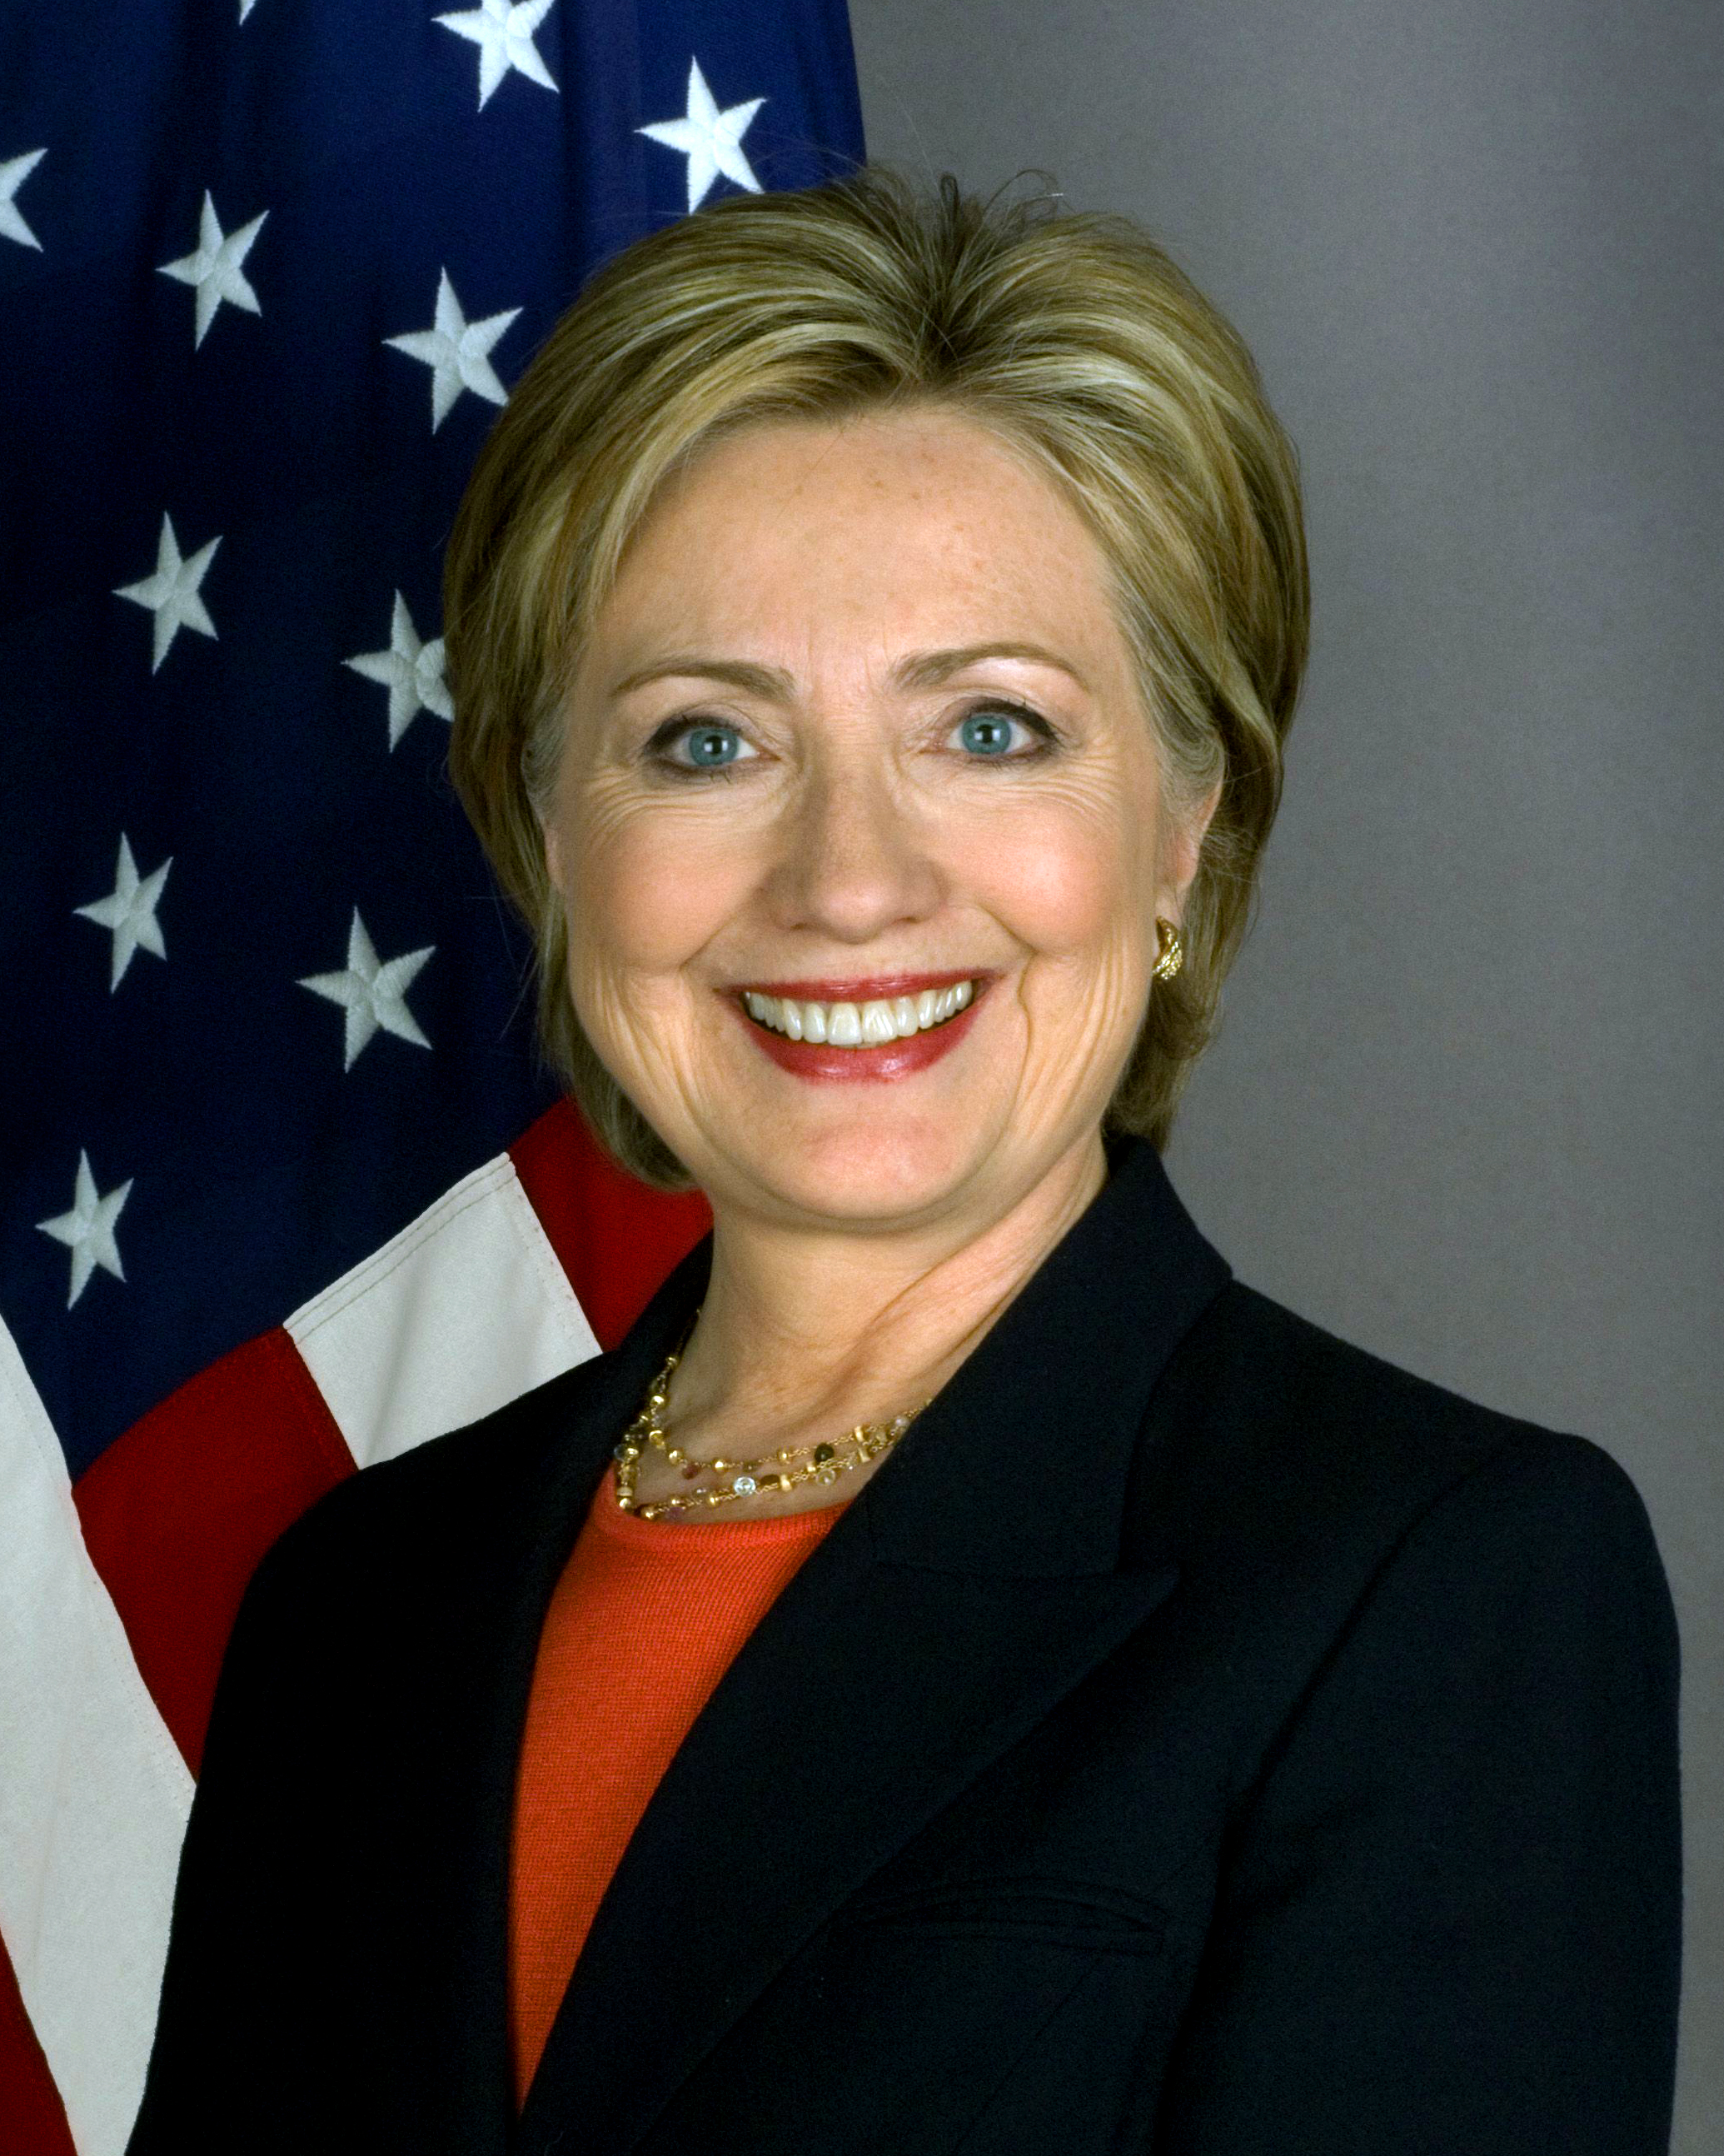 Former U.S. Secretary of State  Hillary Clinton  in her 2009 official photograph.  Source :  U.S. Department of State/Official Photograph/Public Domain